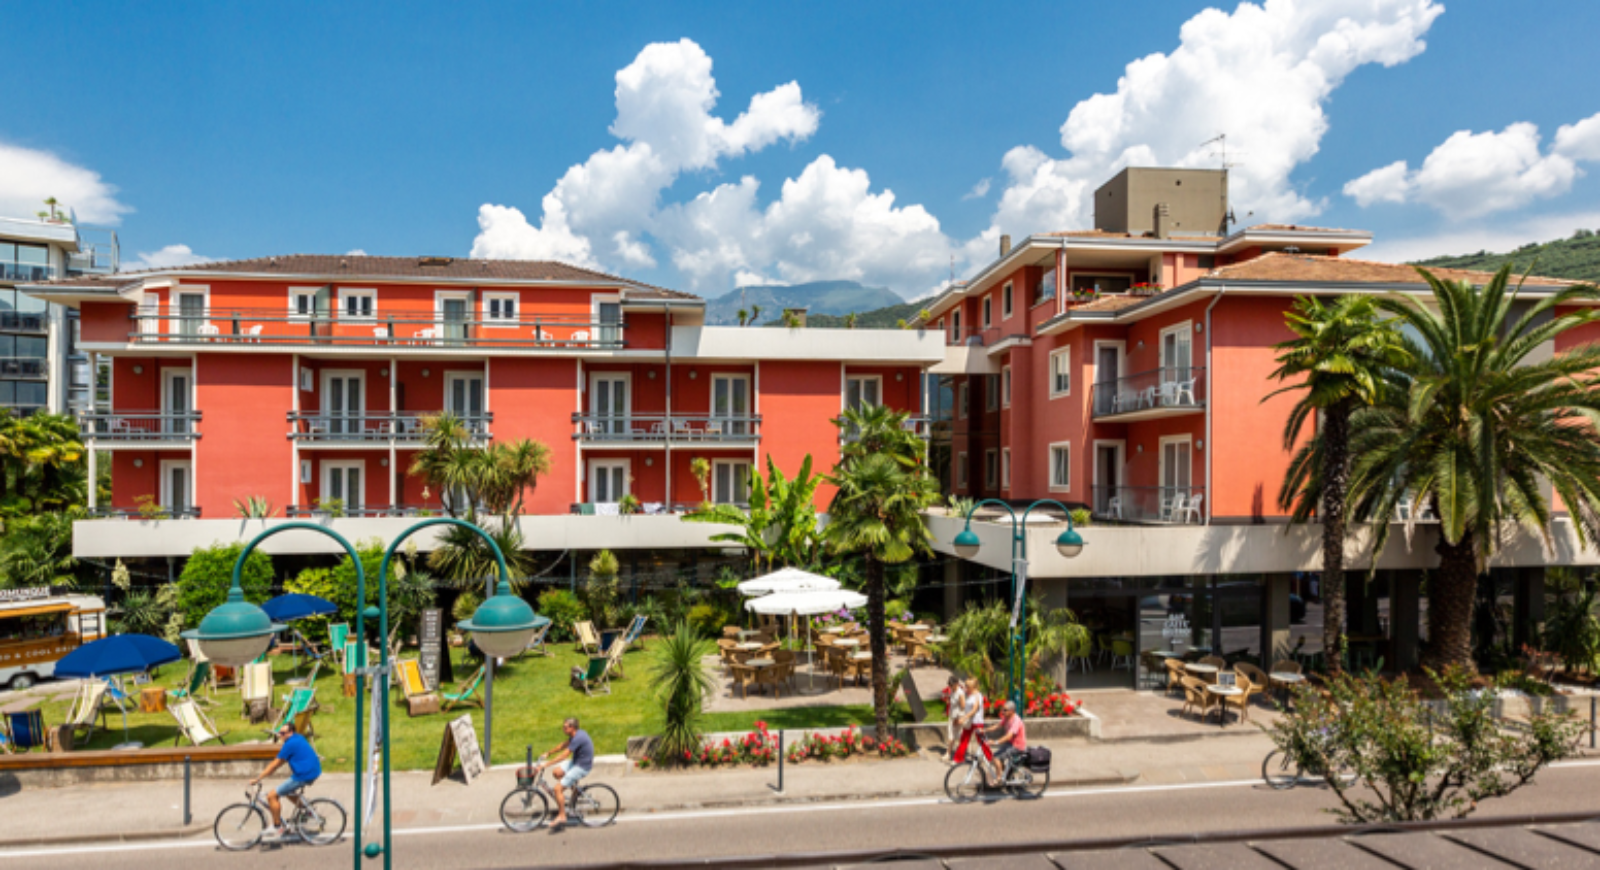 hotel brione garda green resort